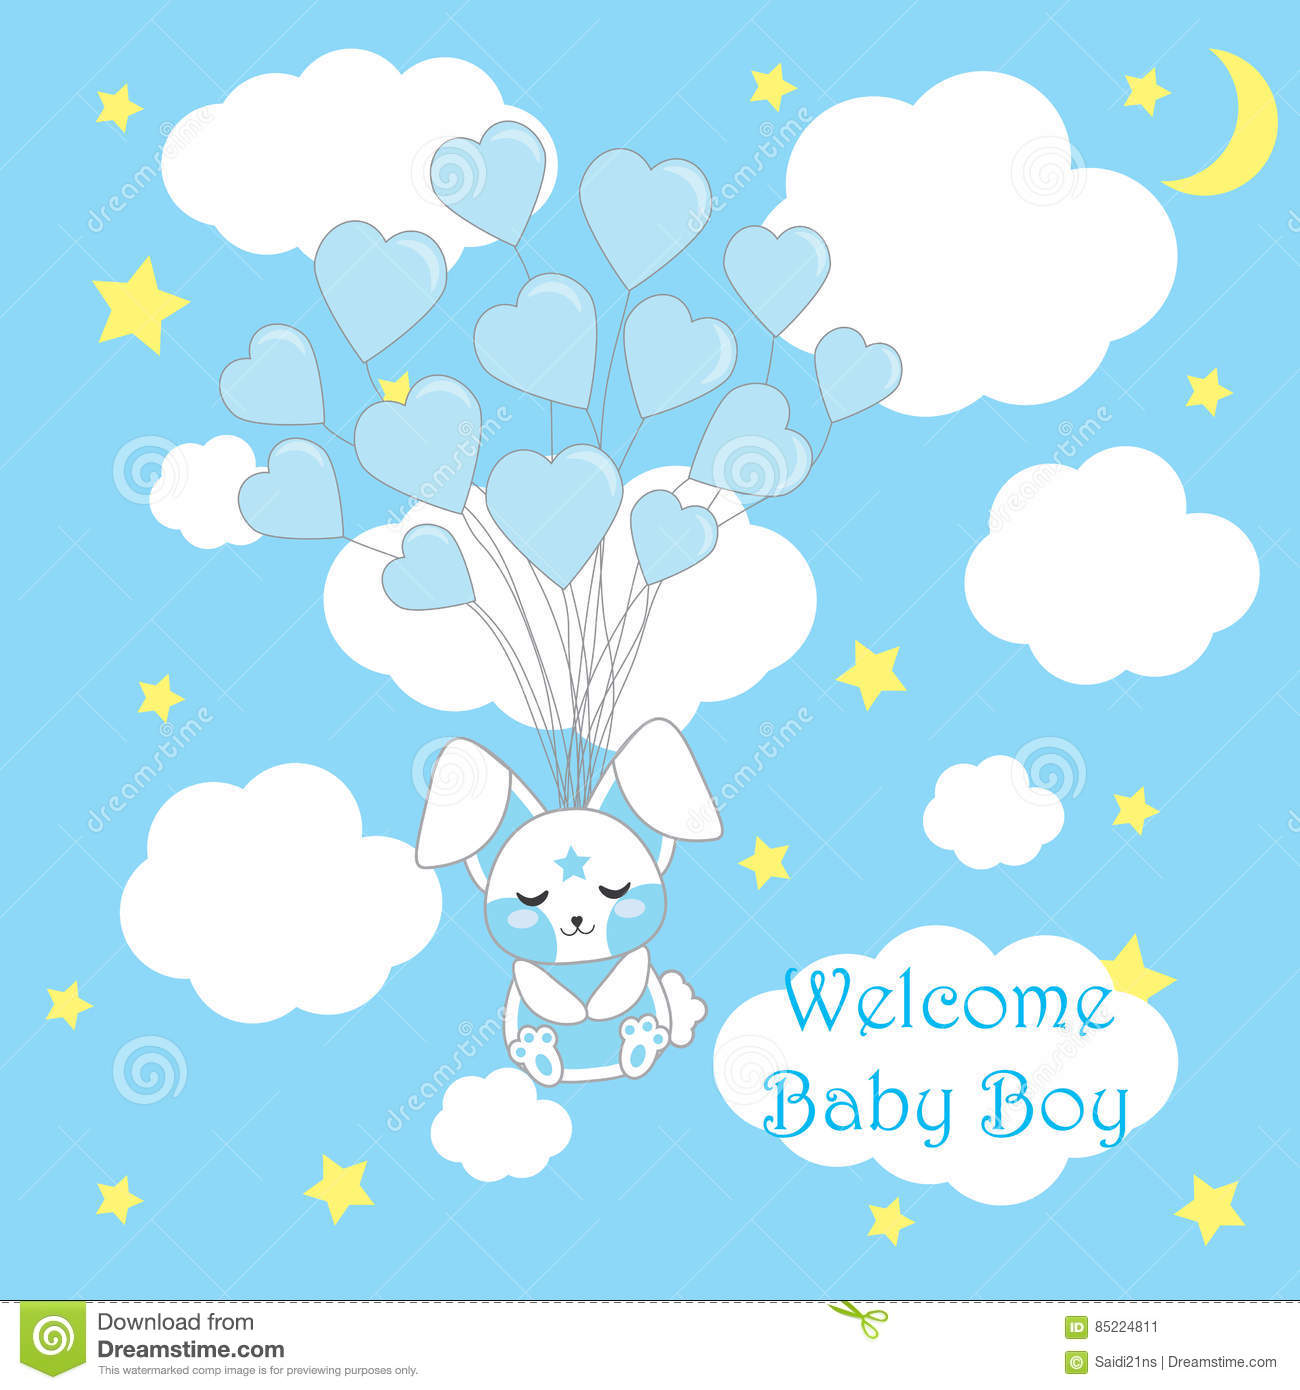 Baby shower card with cute baby rabbit fly with love balloons on blue background for baby boy nursery wall, vector cartoon.